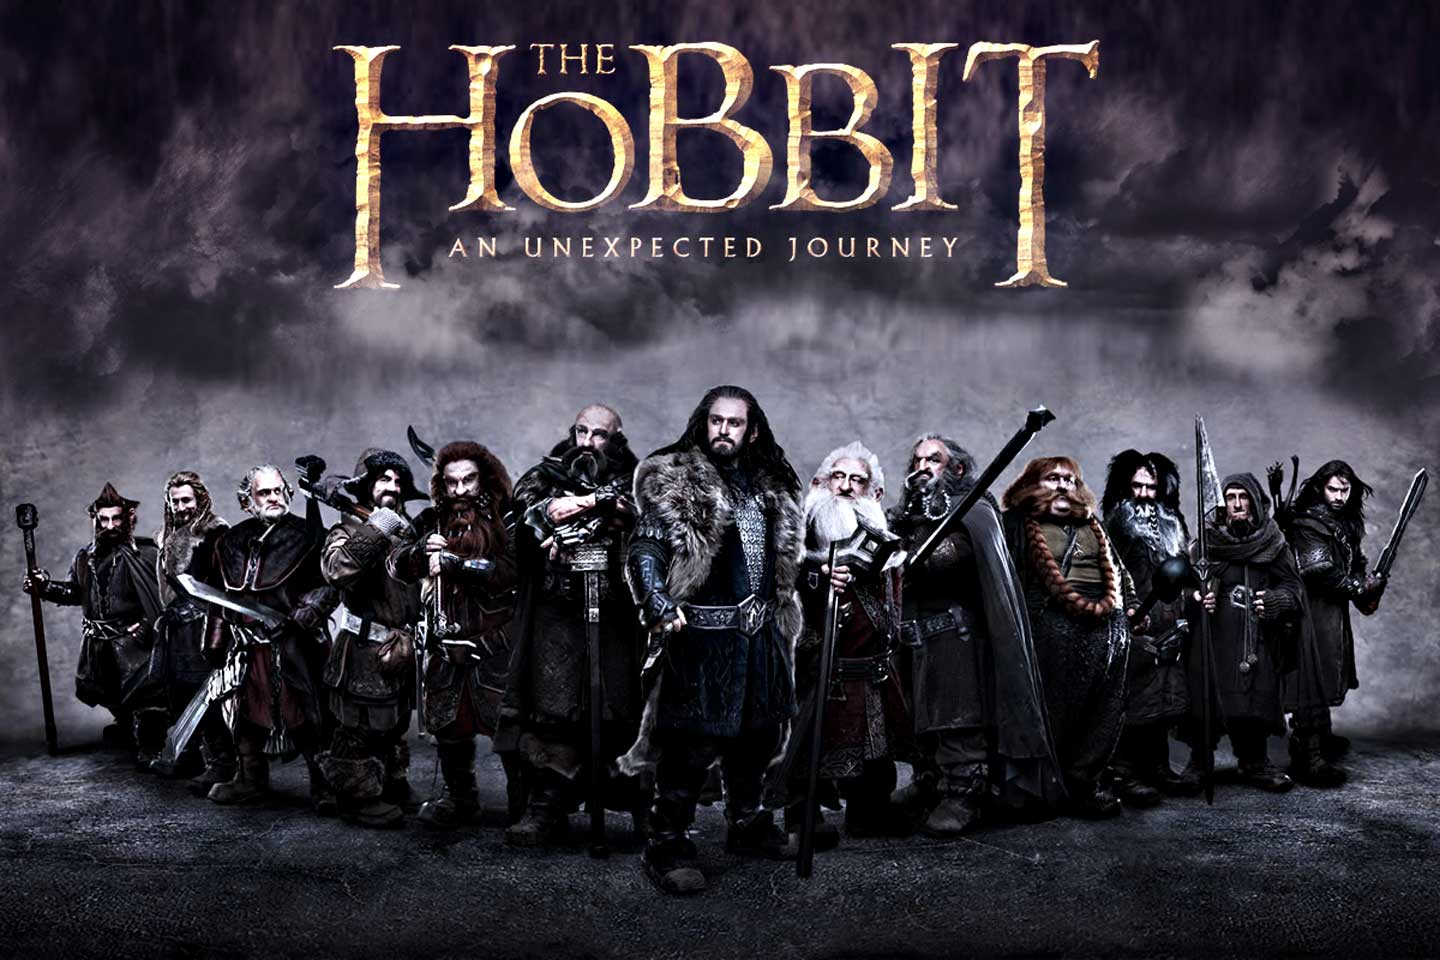 Wallpapers HD El Hobbit Wallpapers HD Wallpapers Fondo de Pantalla 1440x960